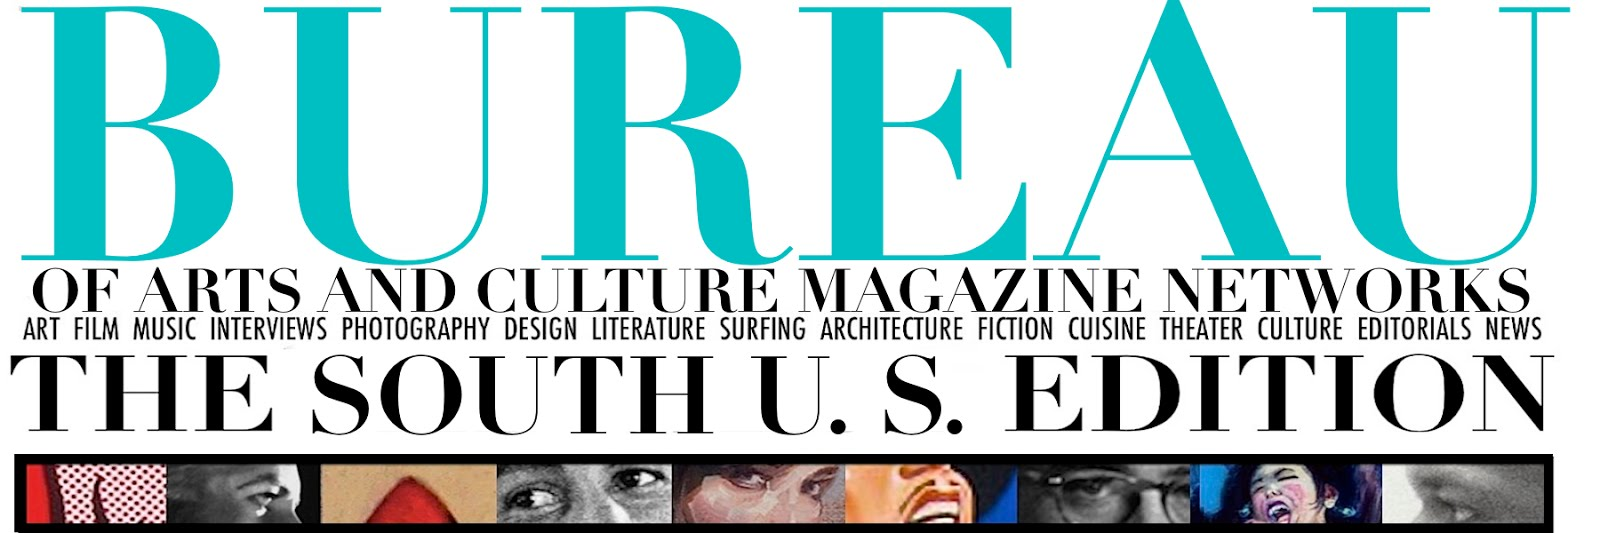 VISIT BUREAU OF ARTS AND CULTURE MAIN MAGAZINE SITE for AUDIO INTERVIEWS, AUDIO ARTICLES AND MORE !